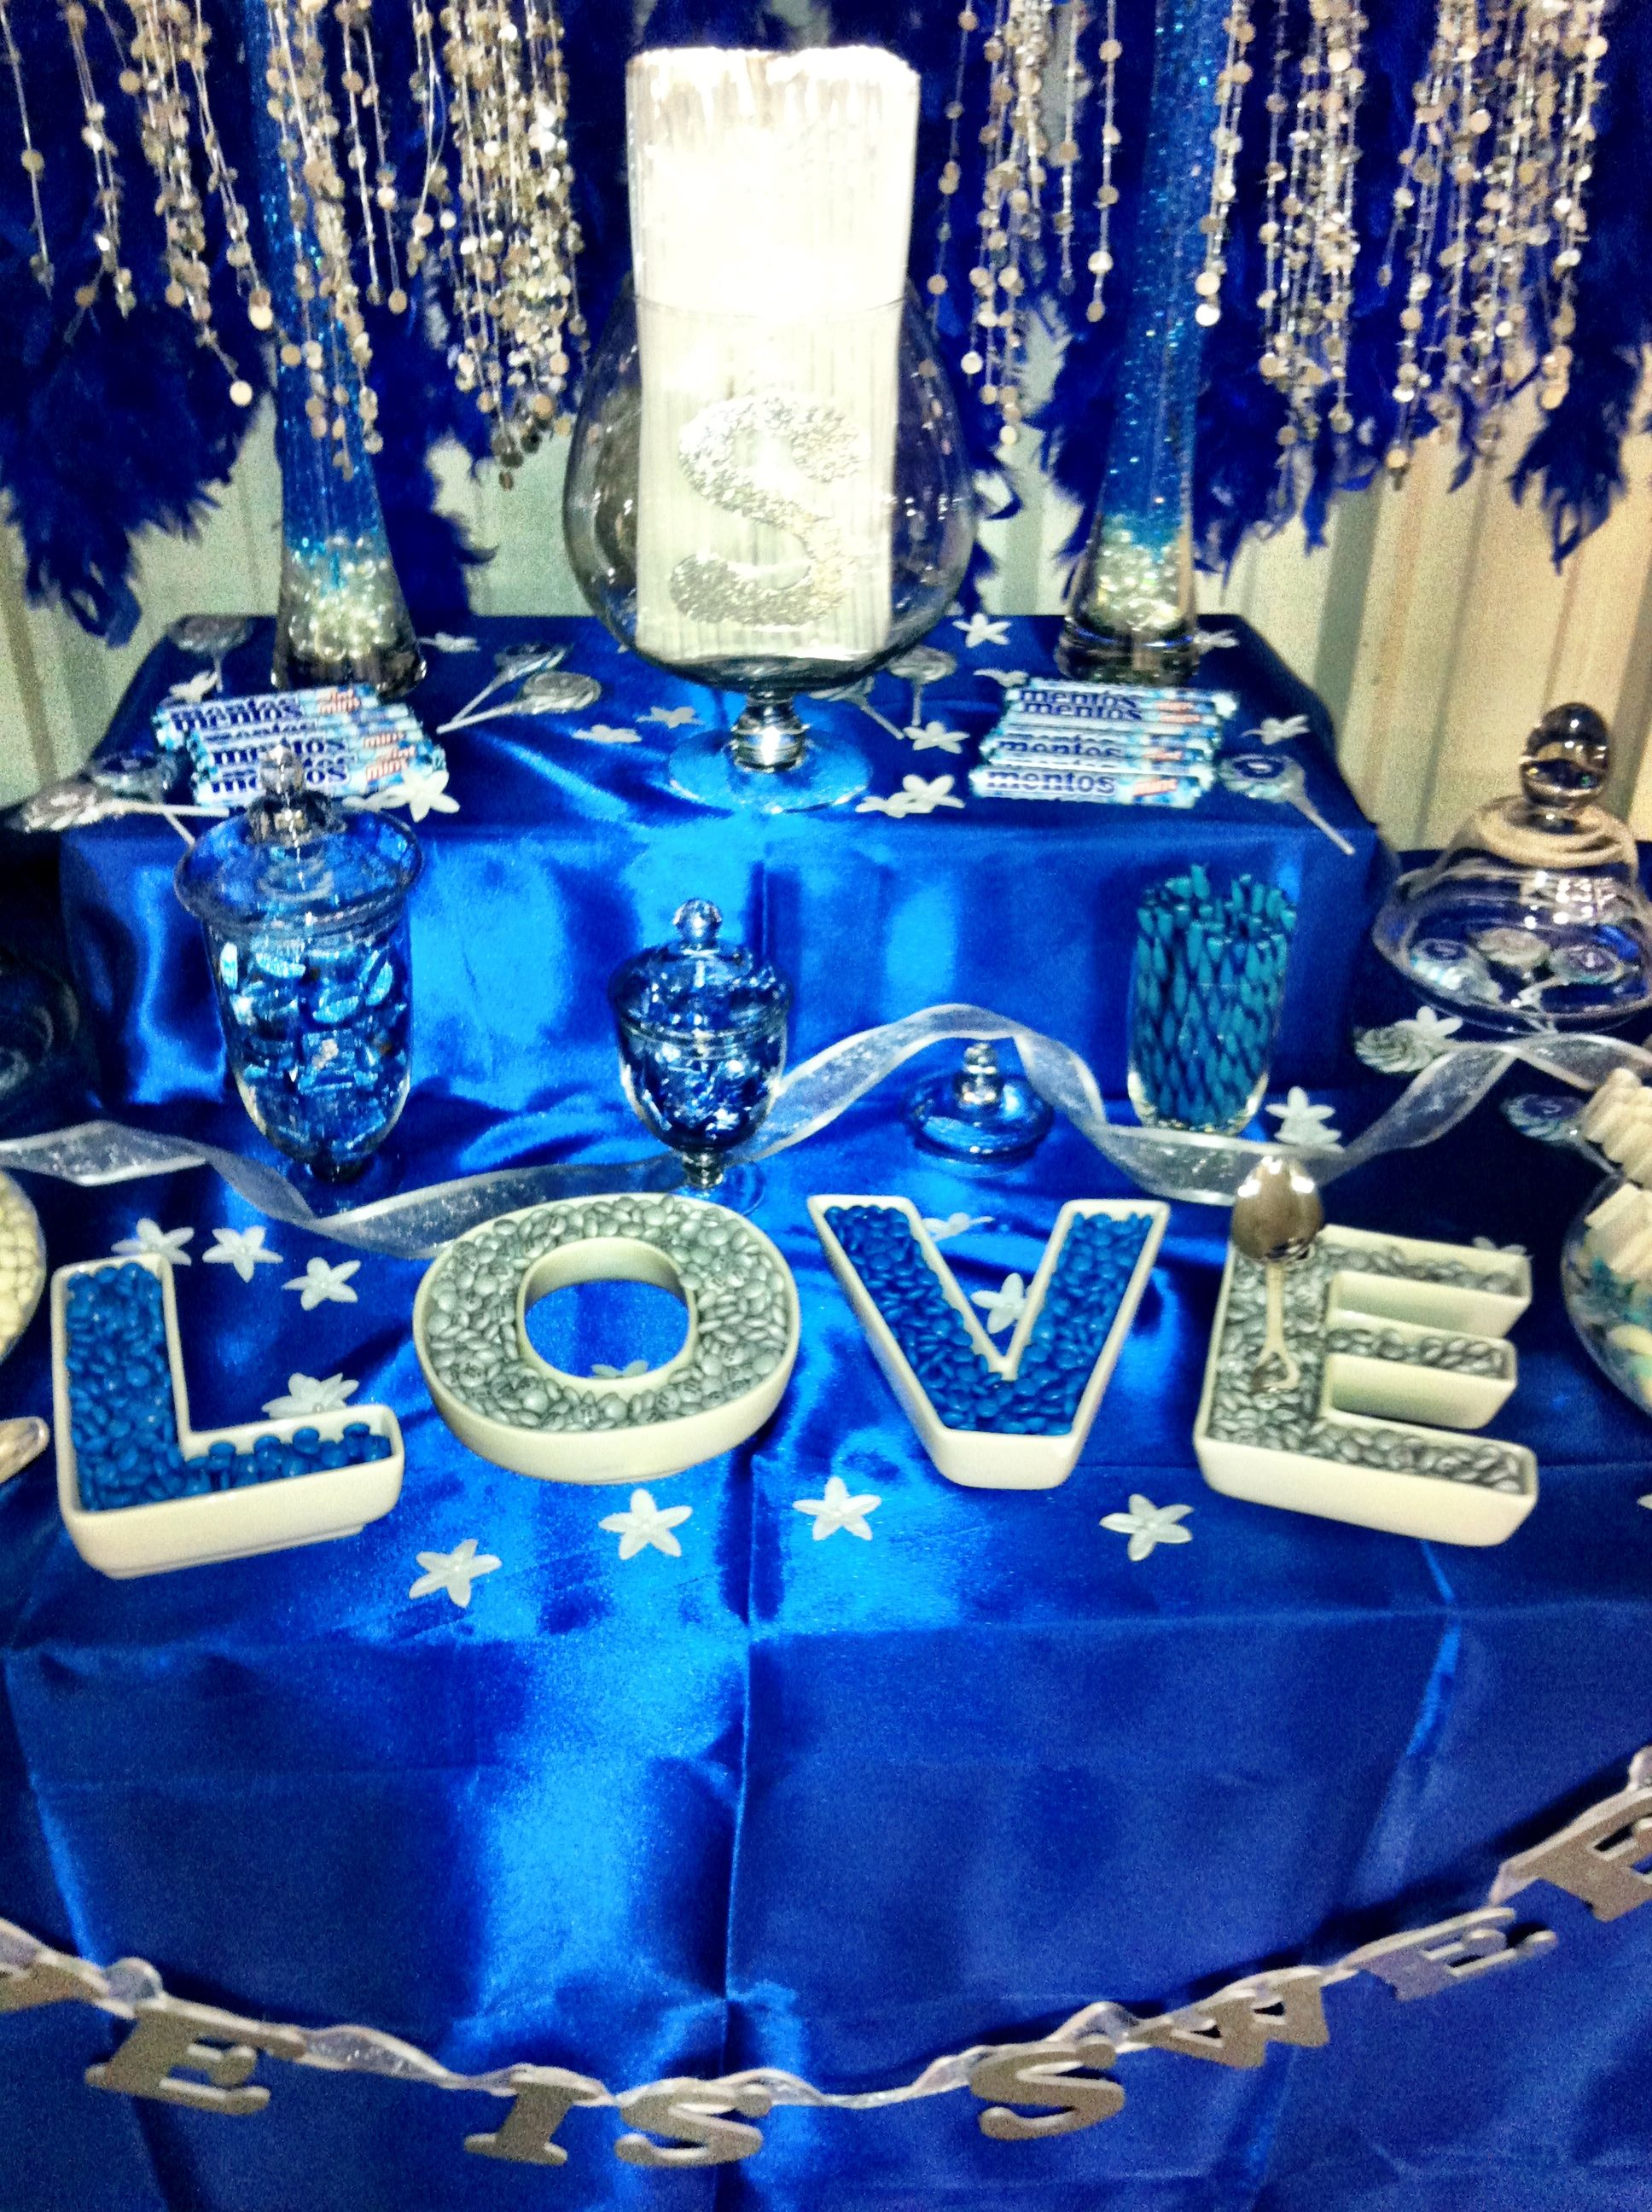 My Wedding Candy Buffet Blue Silver White Blue Themed Wedding Wedding Table Decorations Blue Silver Candy Buffet